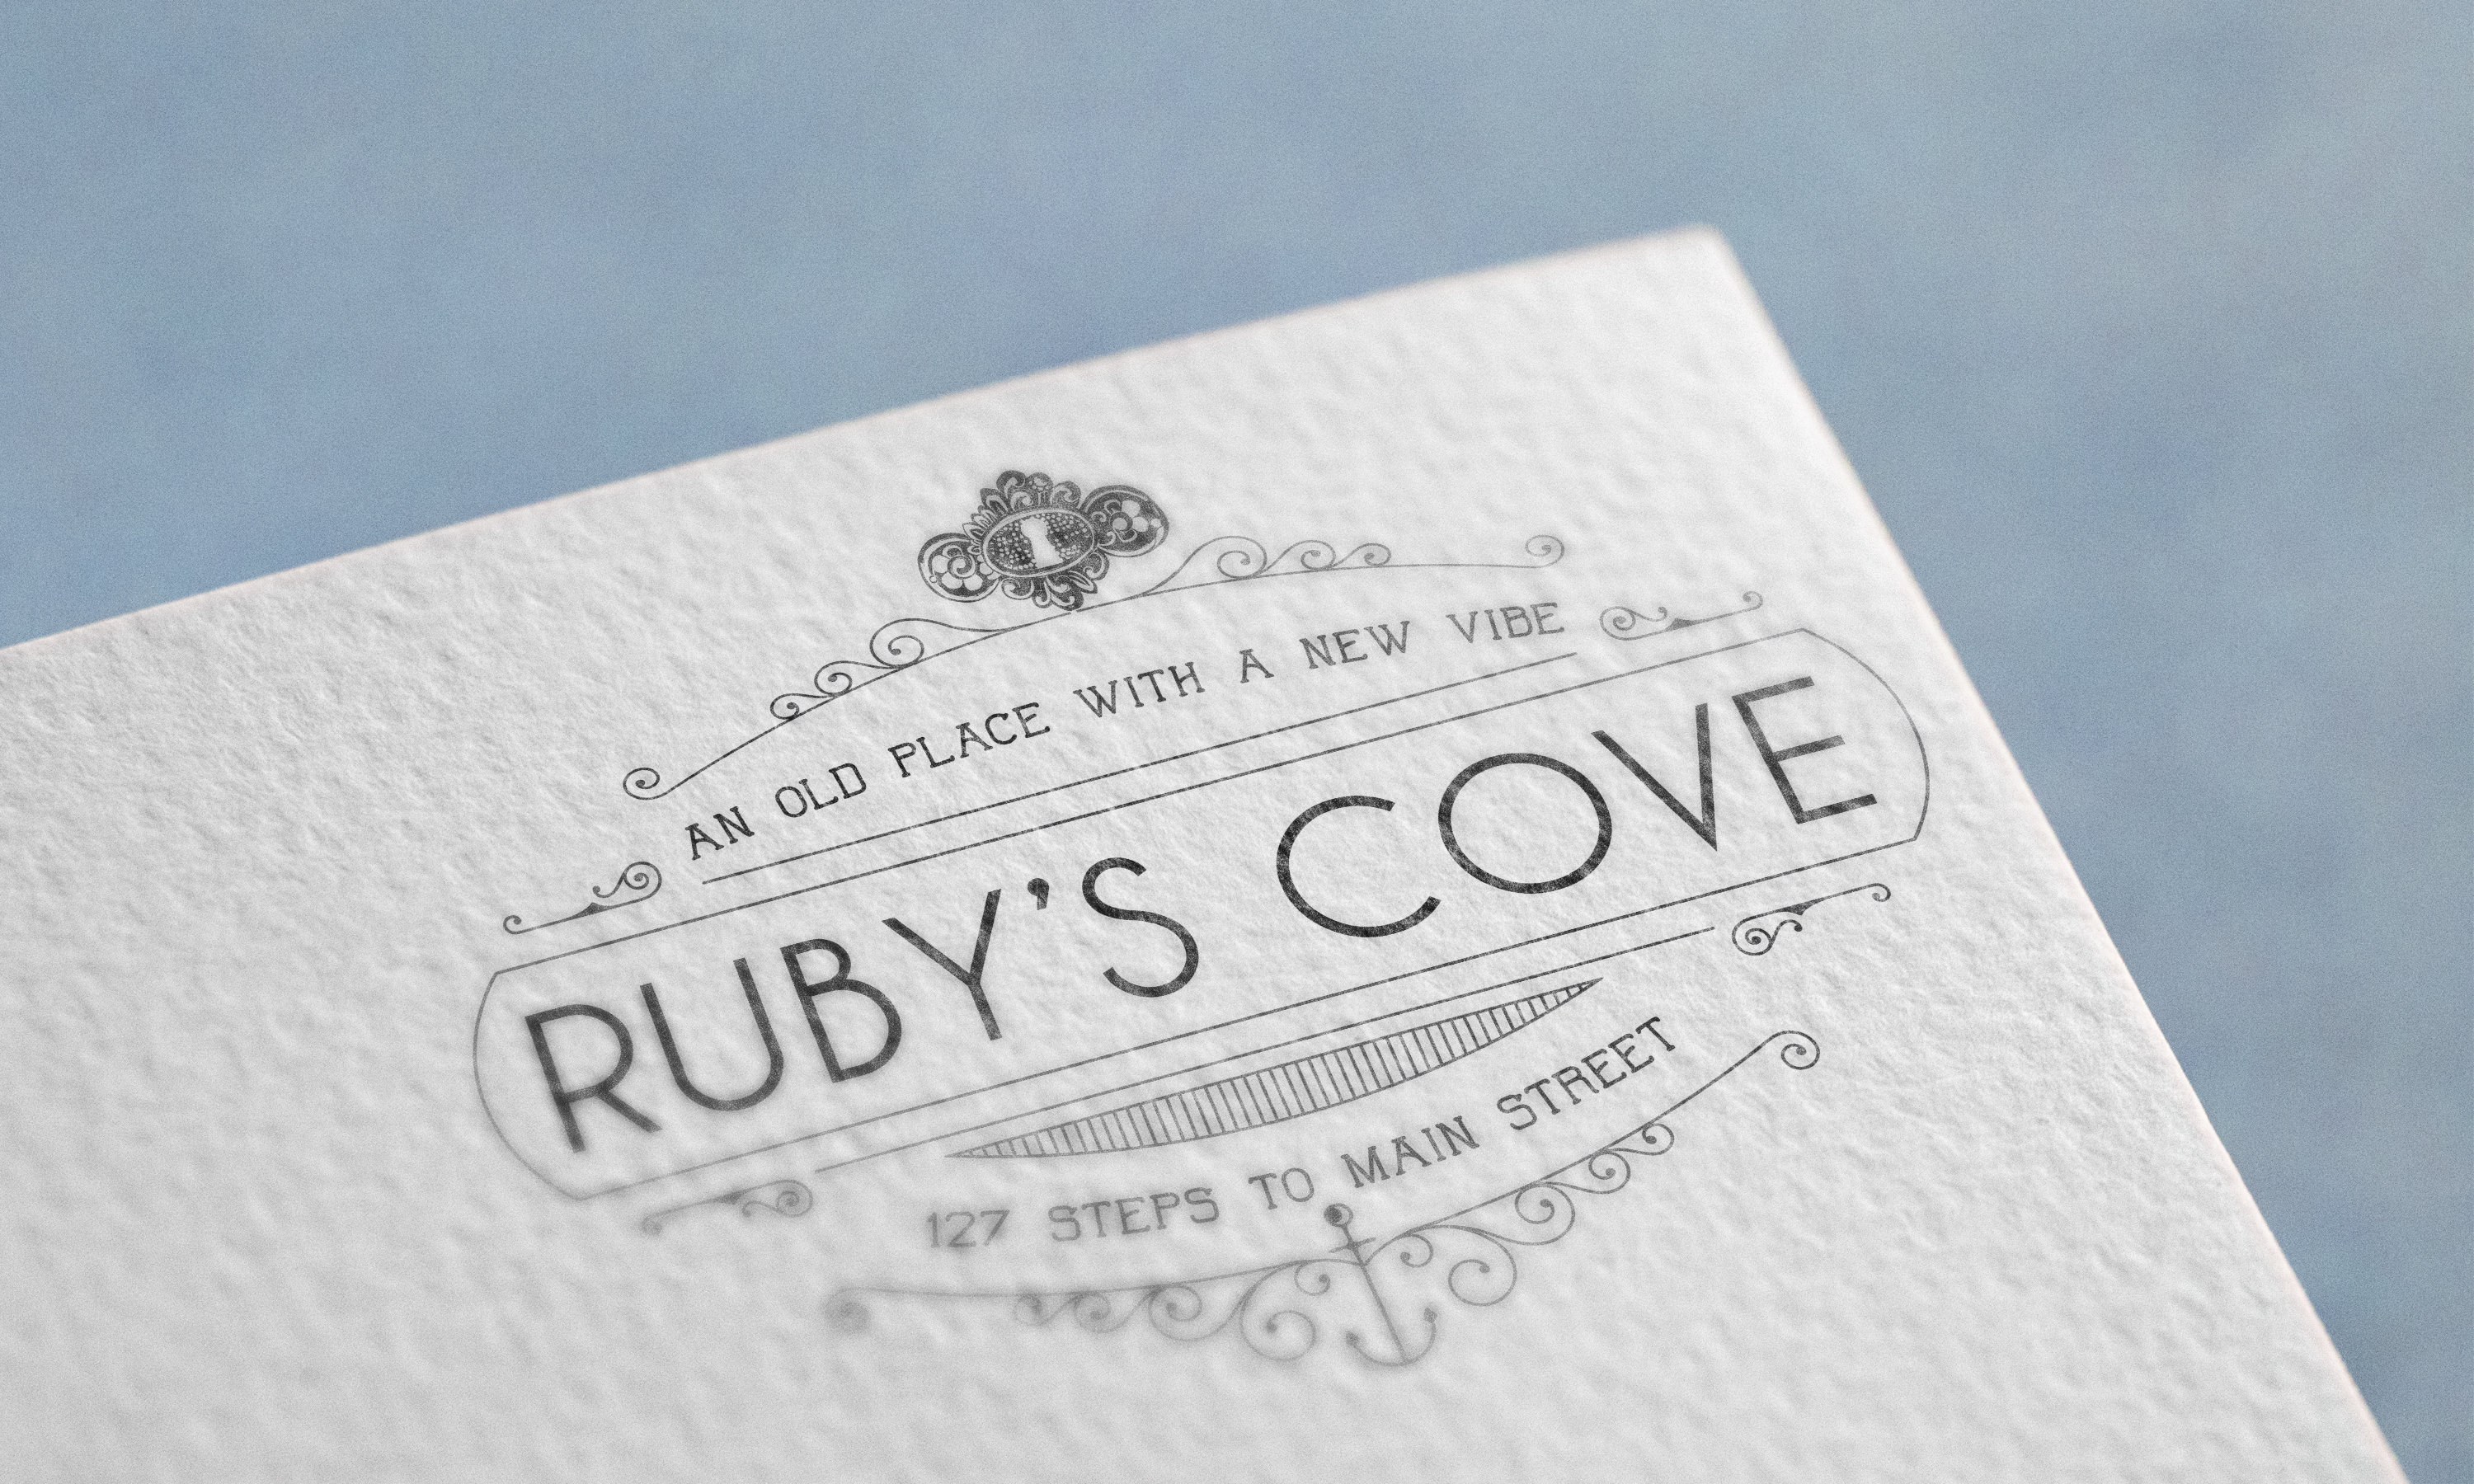 RUBY'S COVE B&B